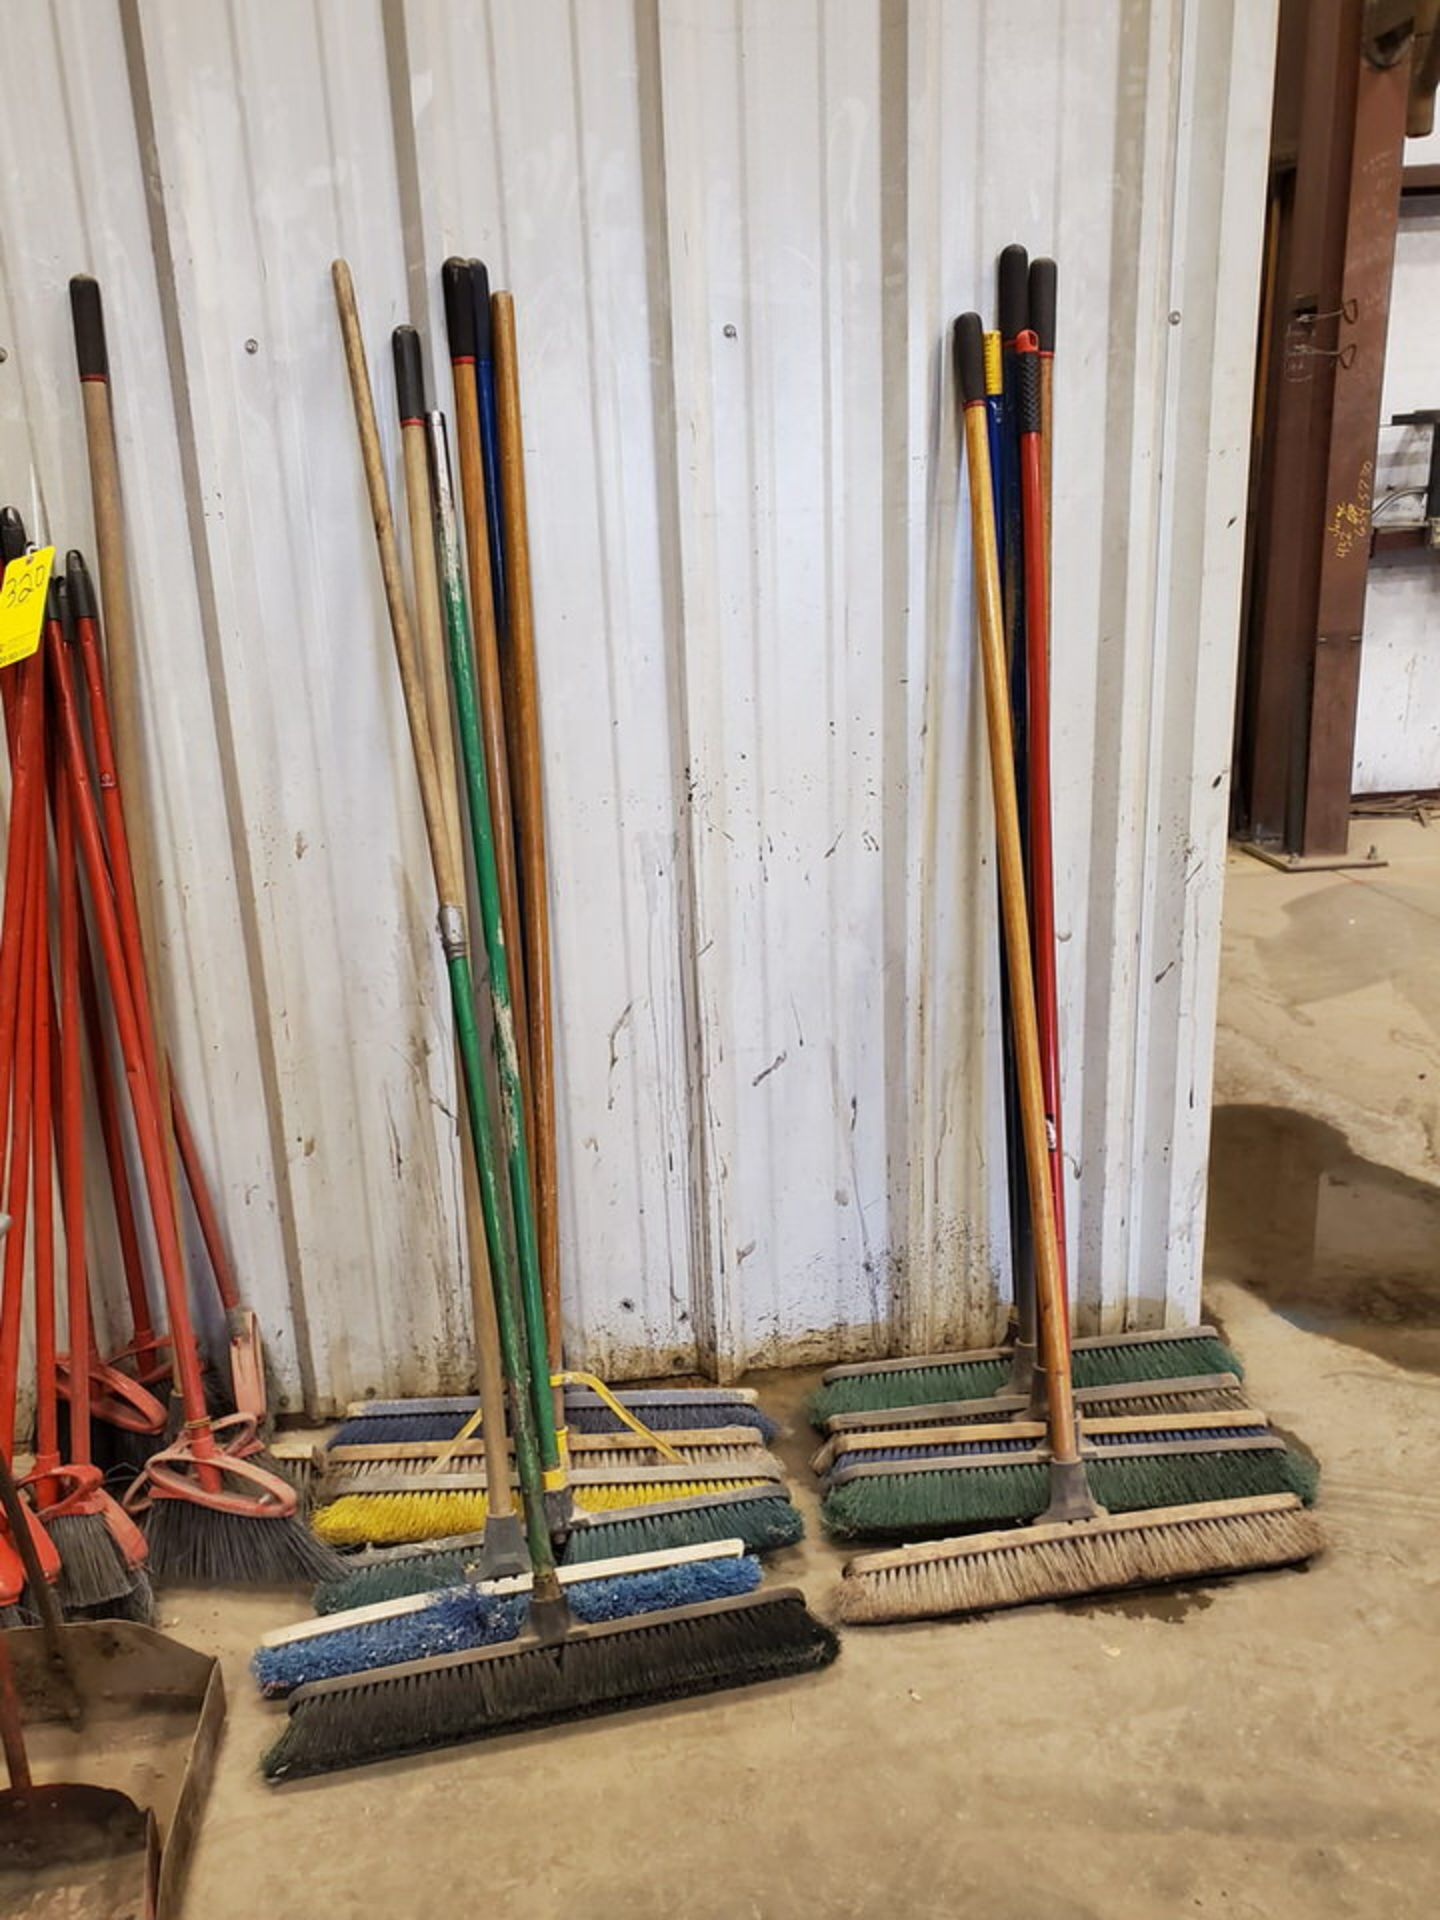 Assorted Cleaning & Yard Matl To Include But Not Limited To: Brooms, Shovels, Rakes, Dust Pans, - Image 4 of 6